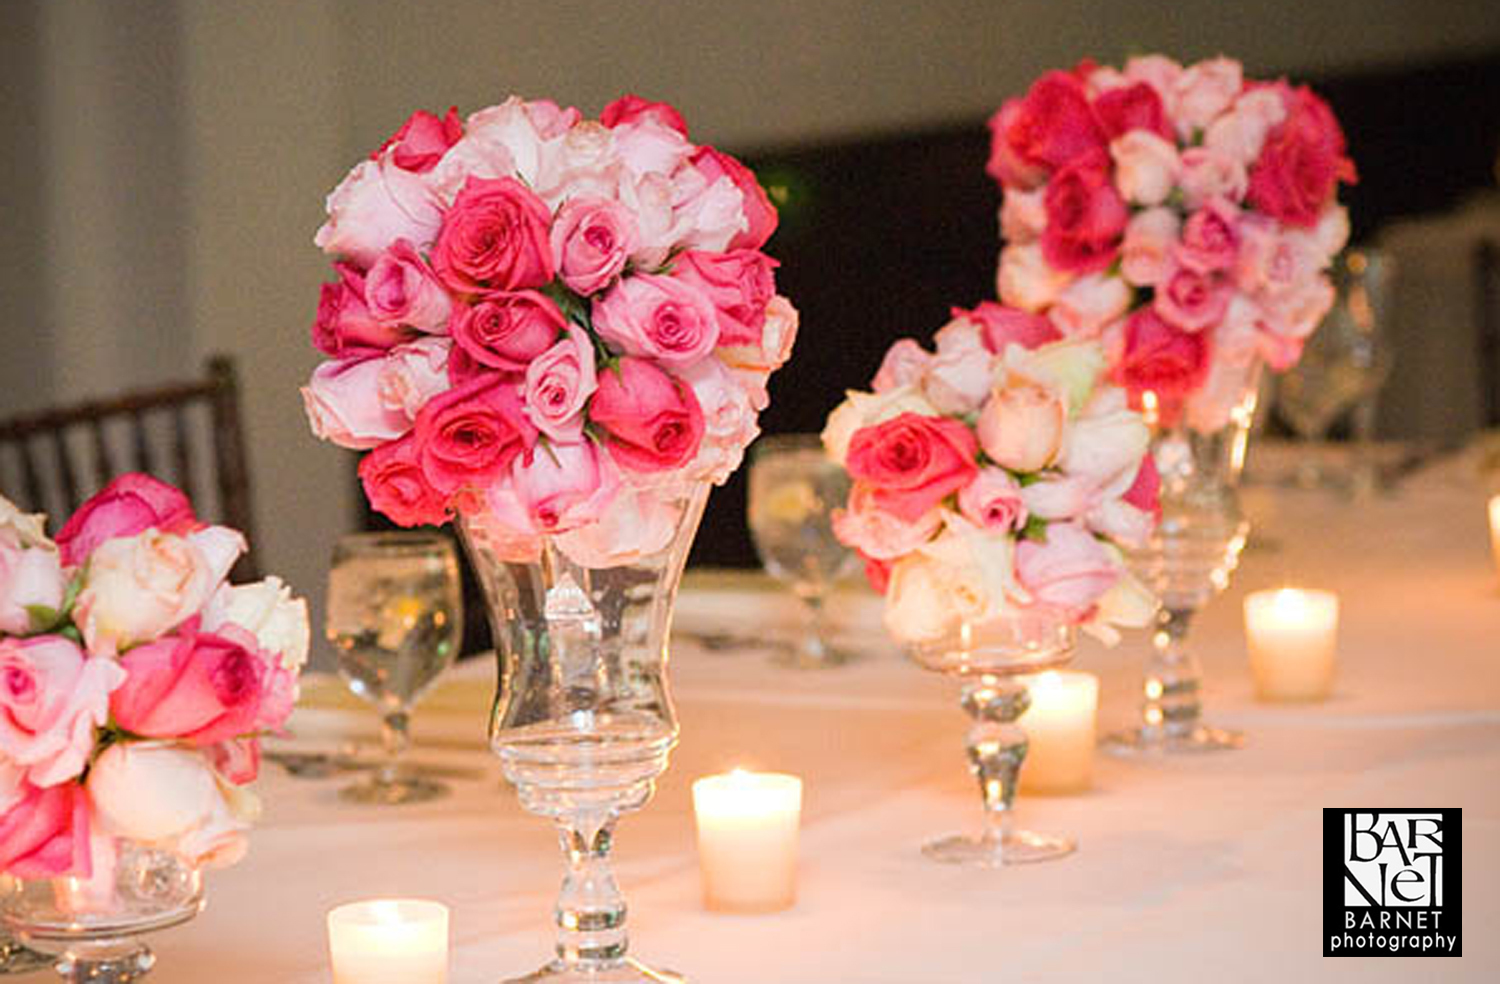 Reception, Flowers & Decor, white, pink, green, Centerpieces, Flowers, Centerpiece, Table, Head, Cesaro designs